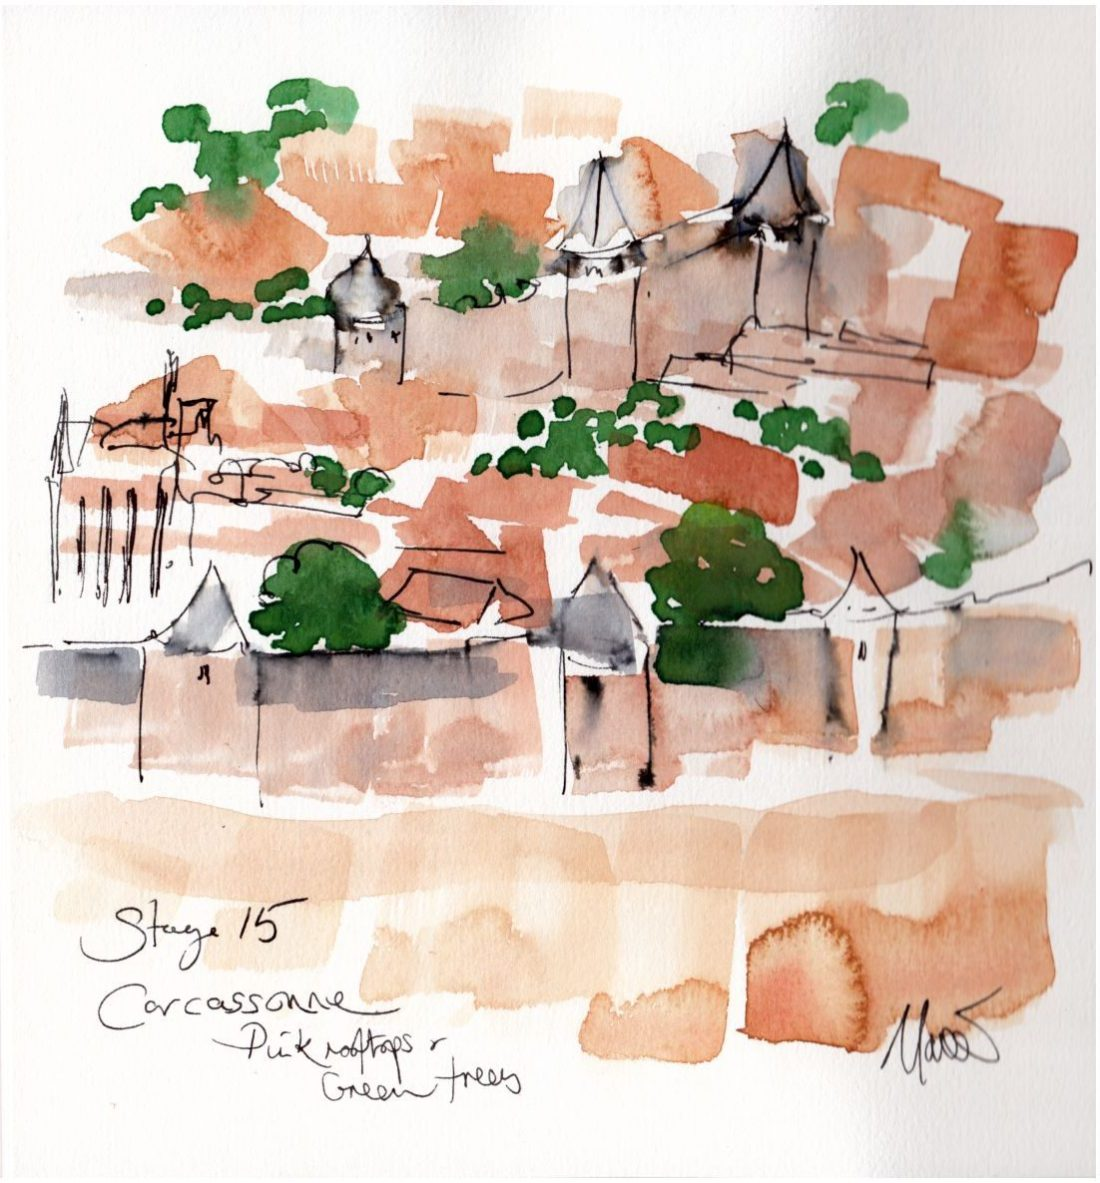 cycling art, tour de france, Stage 15 - Carcassonne, pink rooftops and green trees